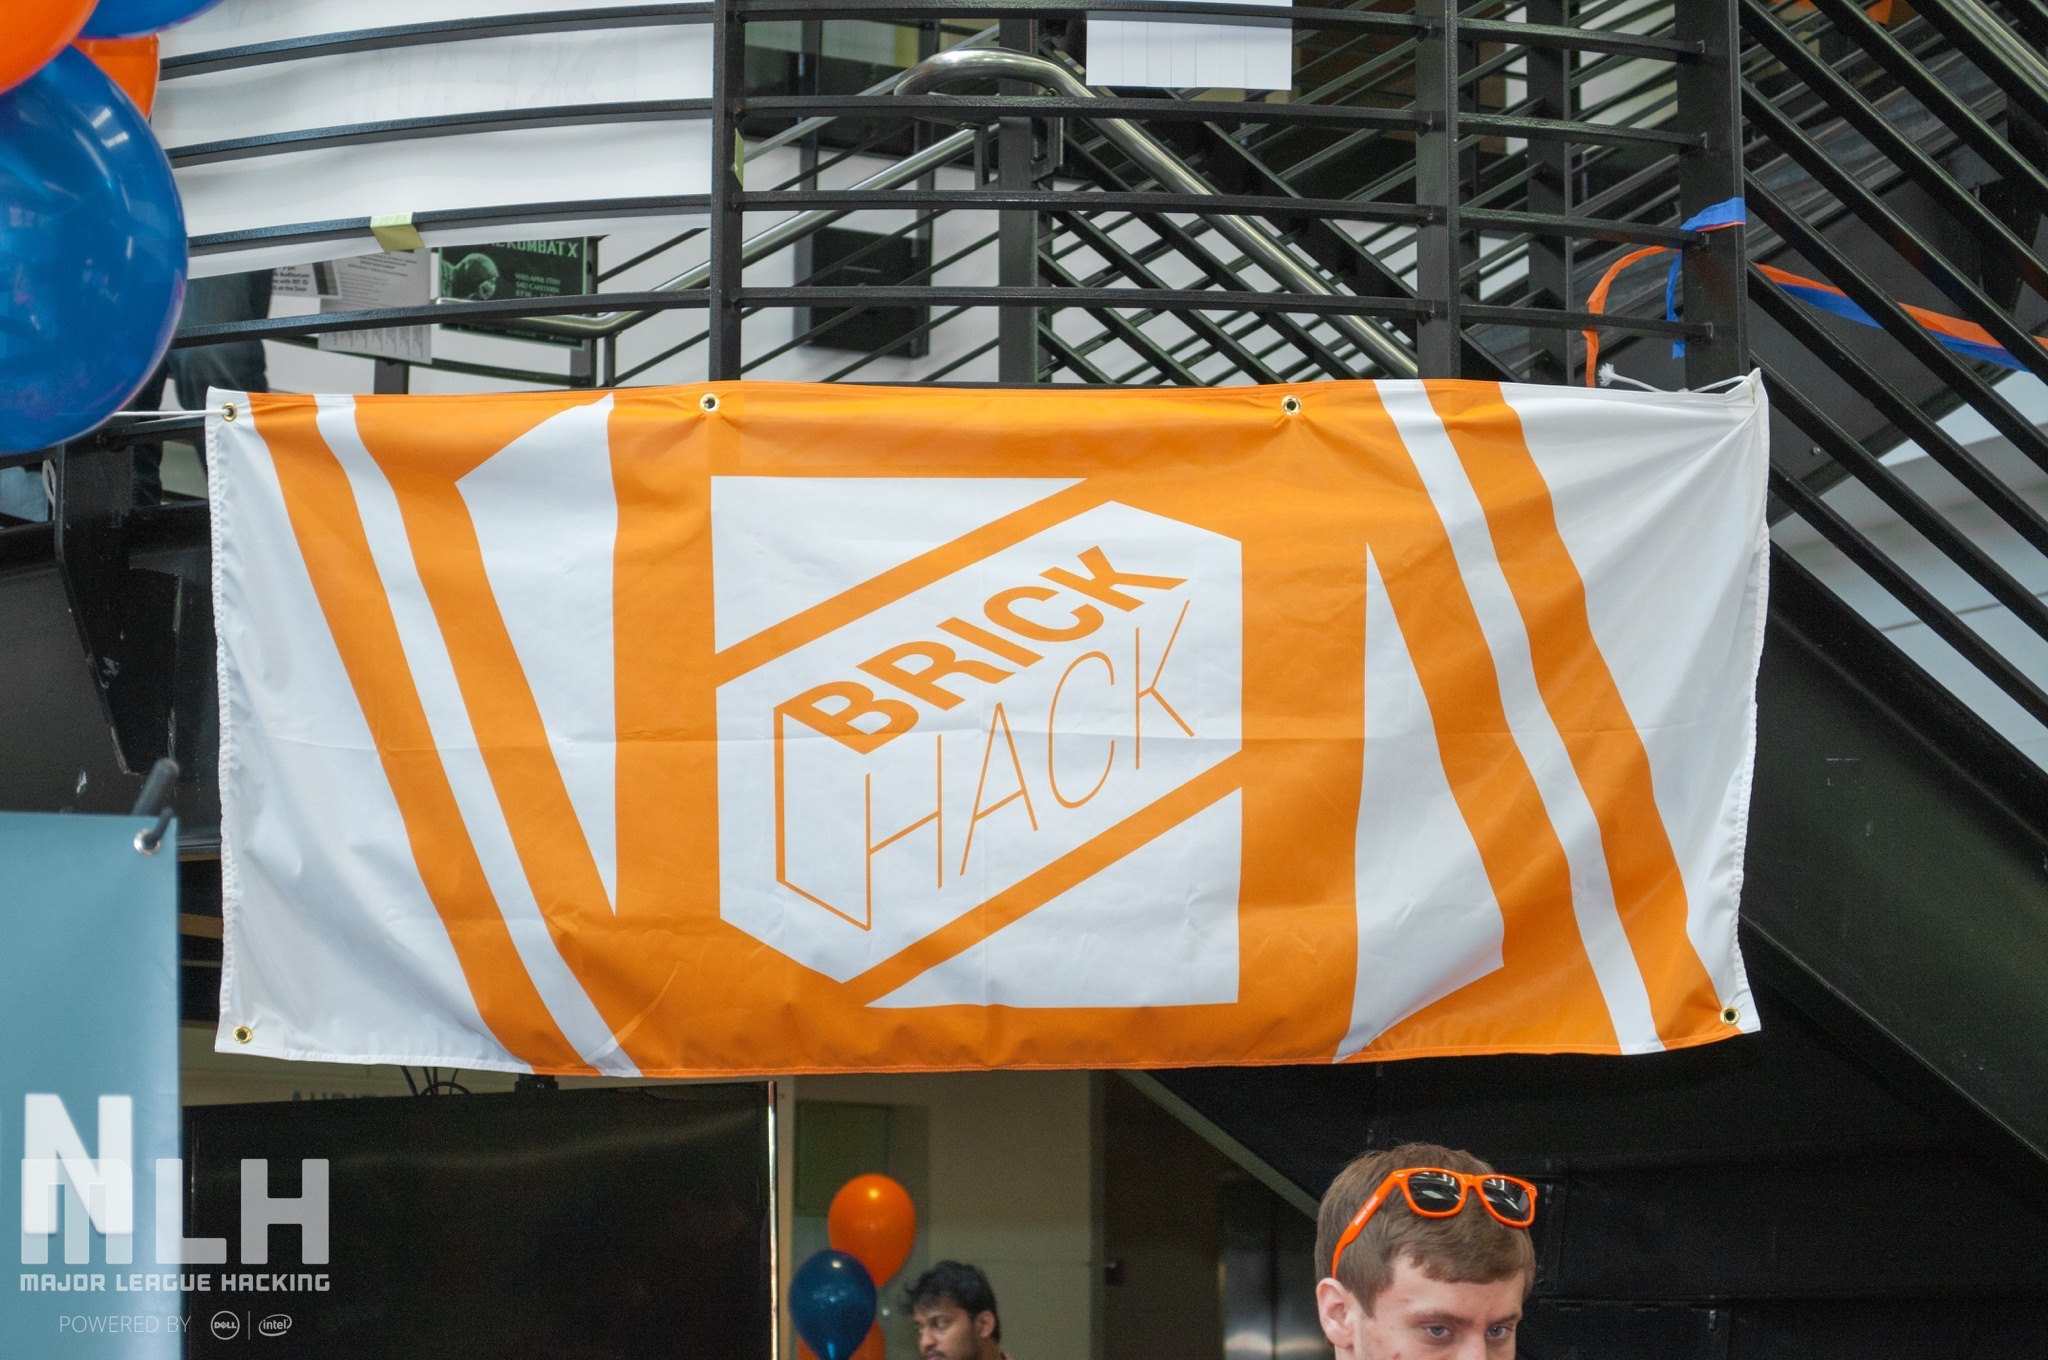 The beautiful BrickHack flag